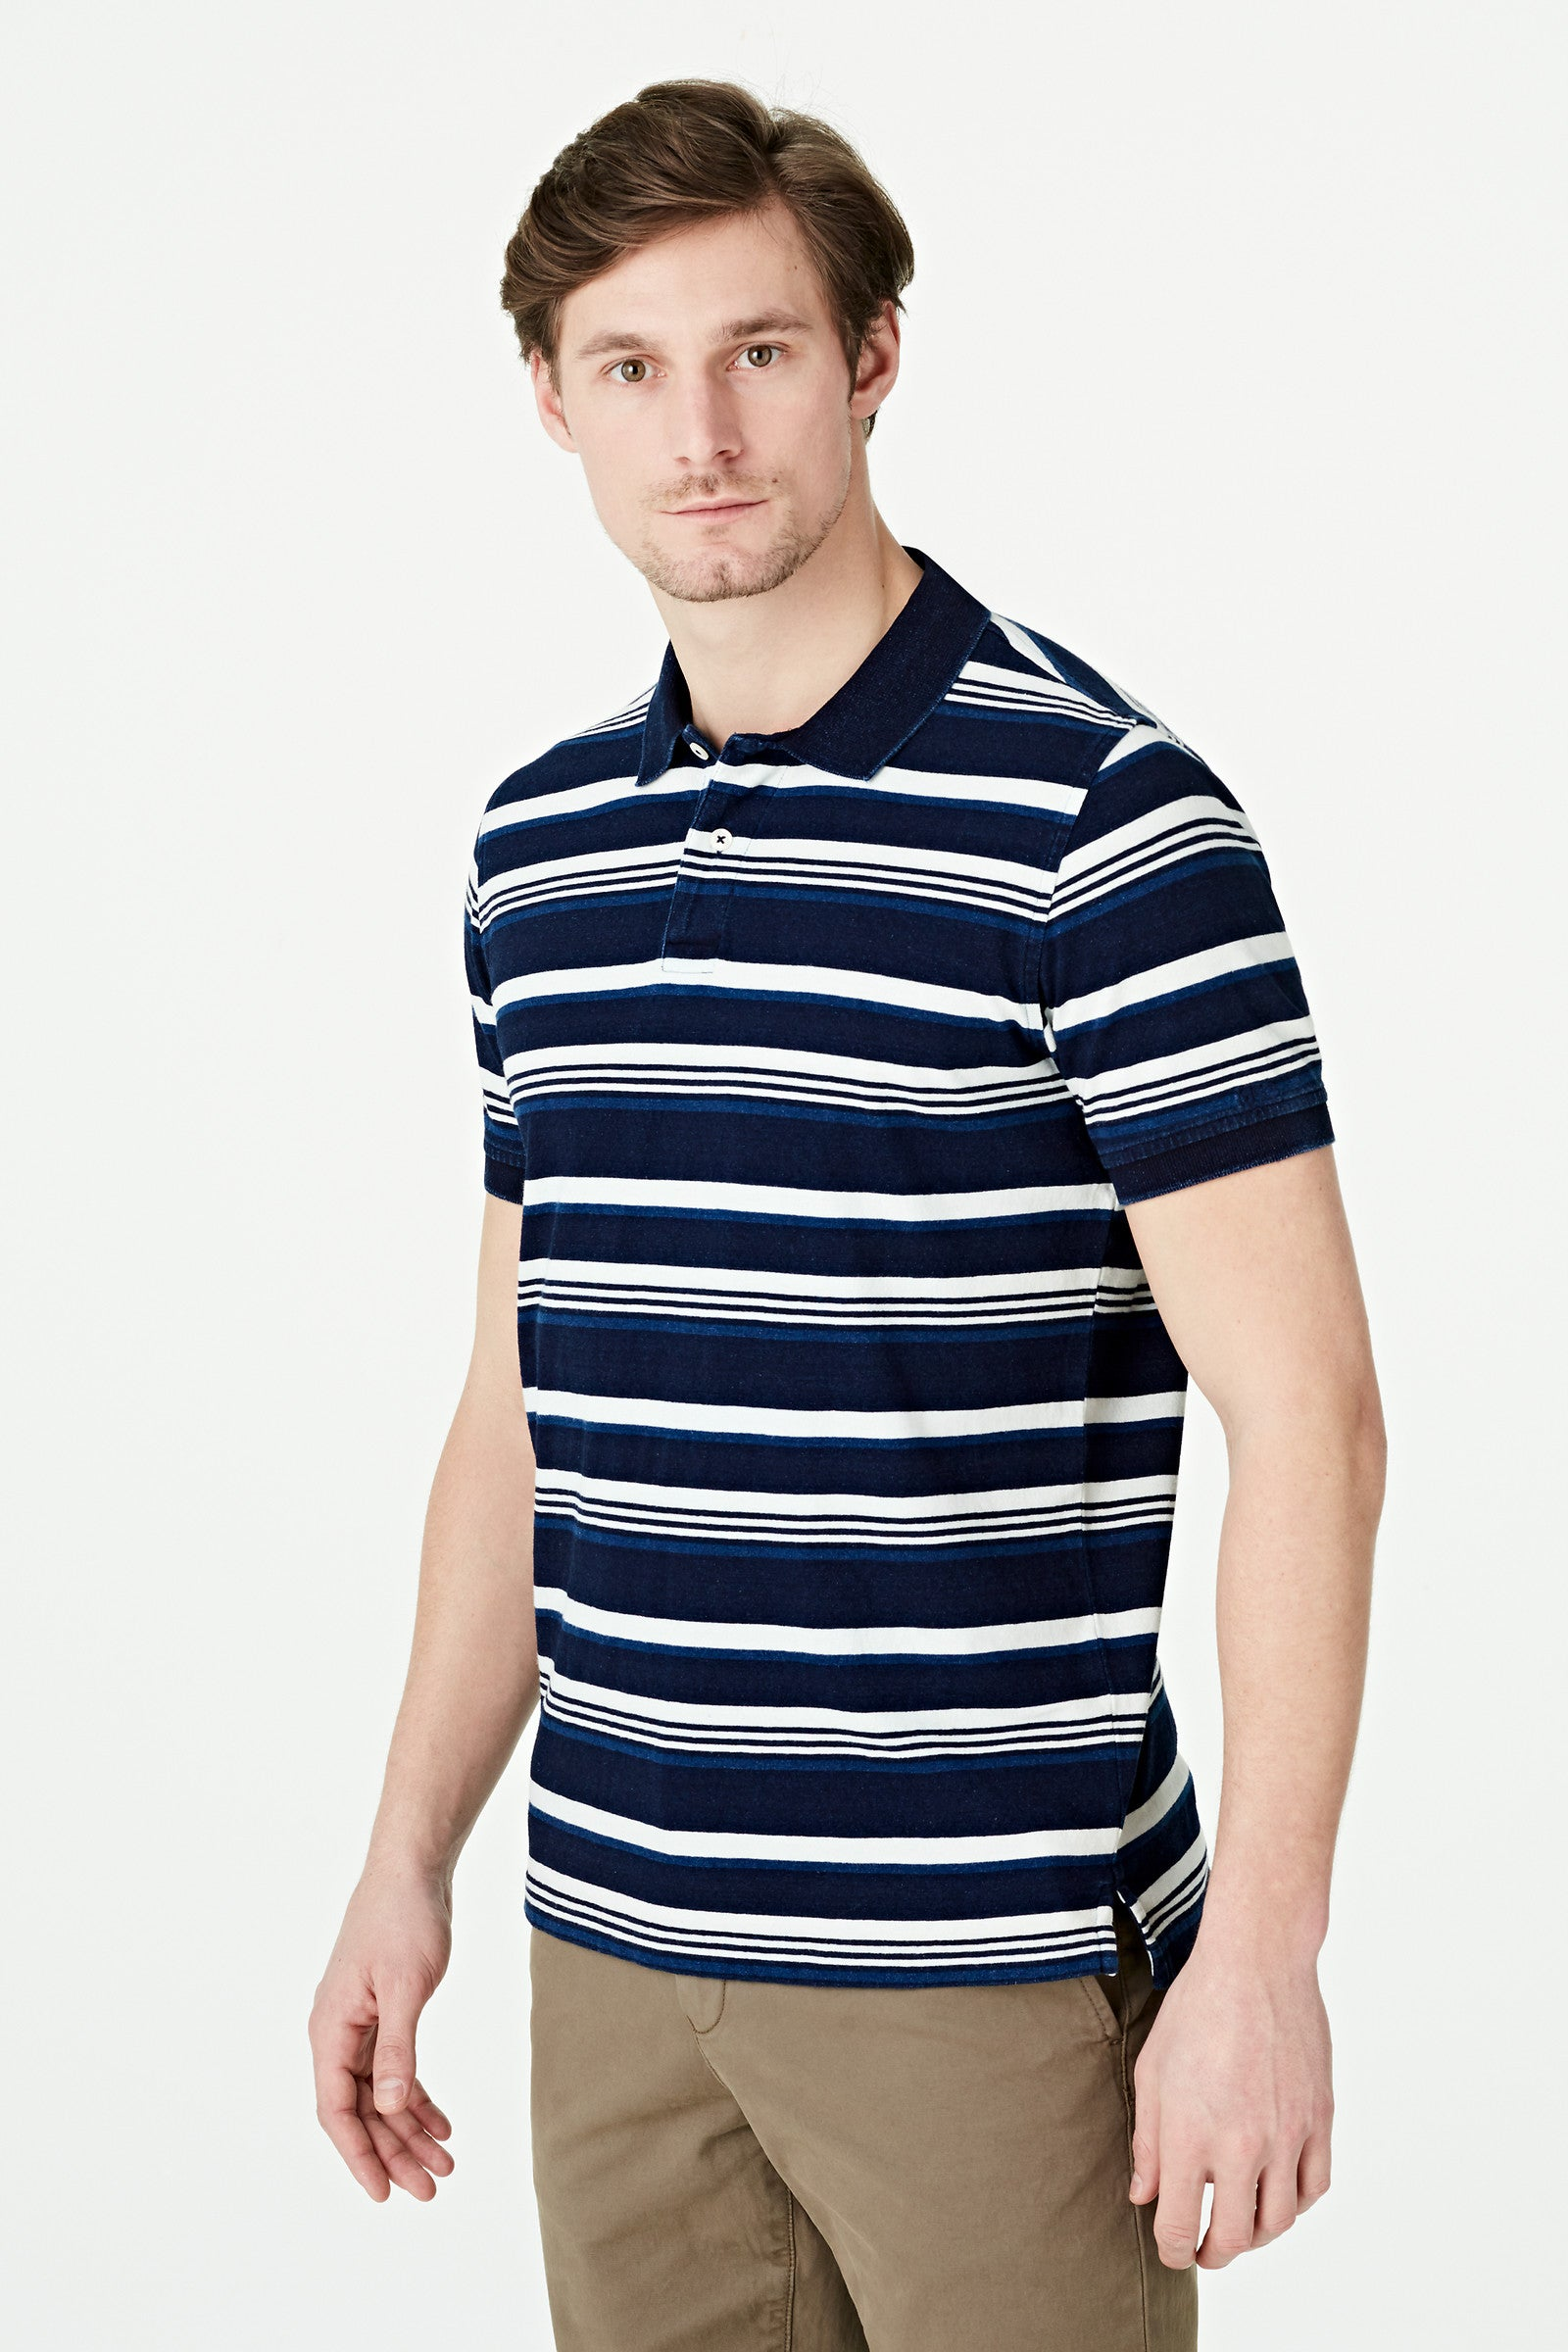 Indigo Stripe Polo Regular Fit